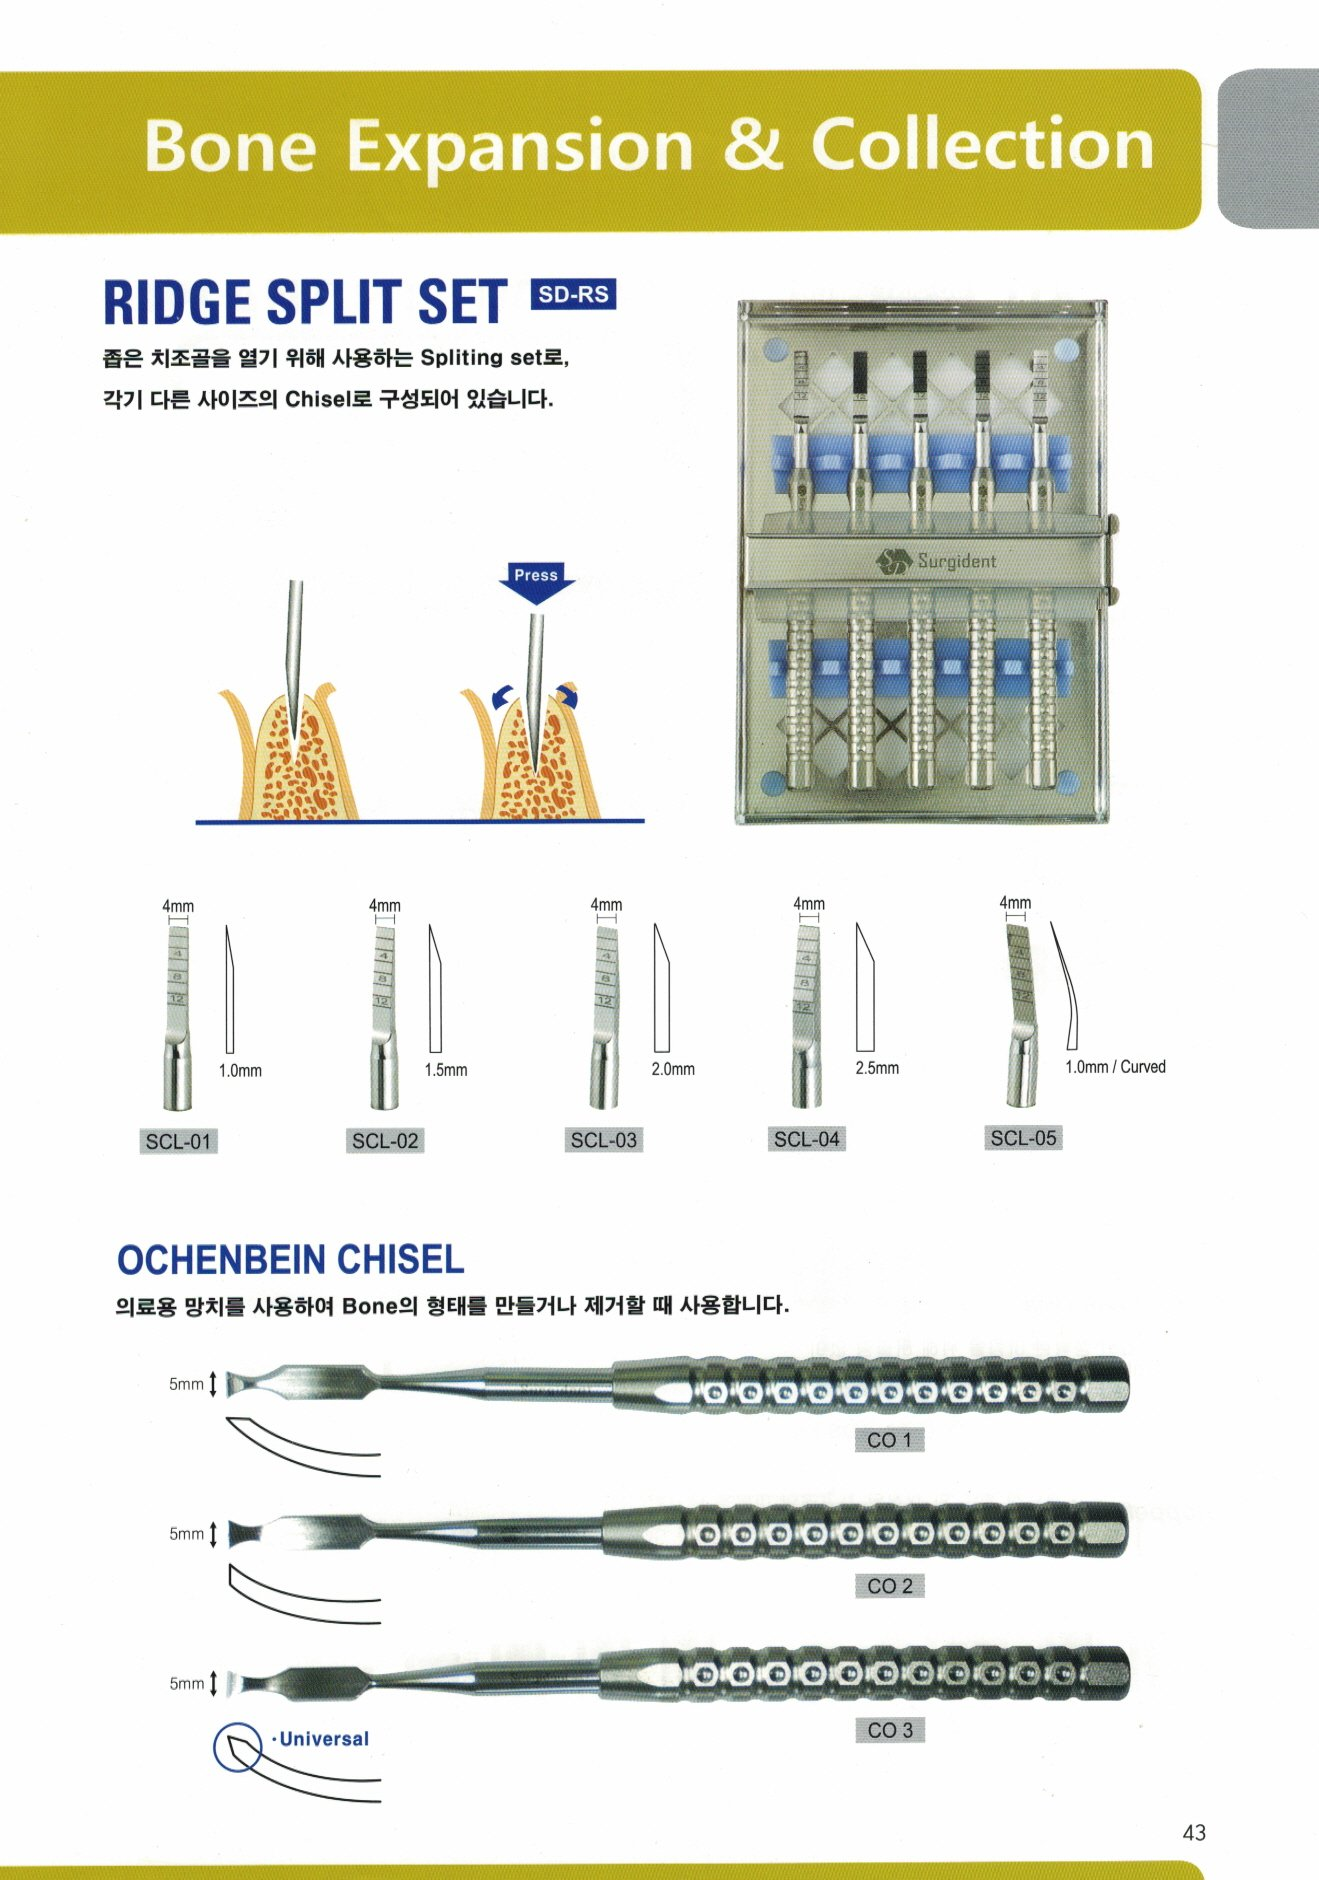 Dental Ridge Split Set Dental Implant Surgical Instrument